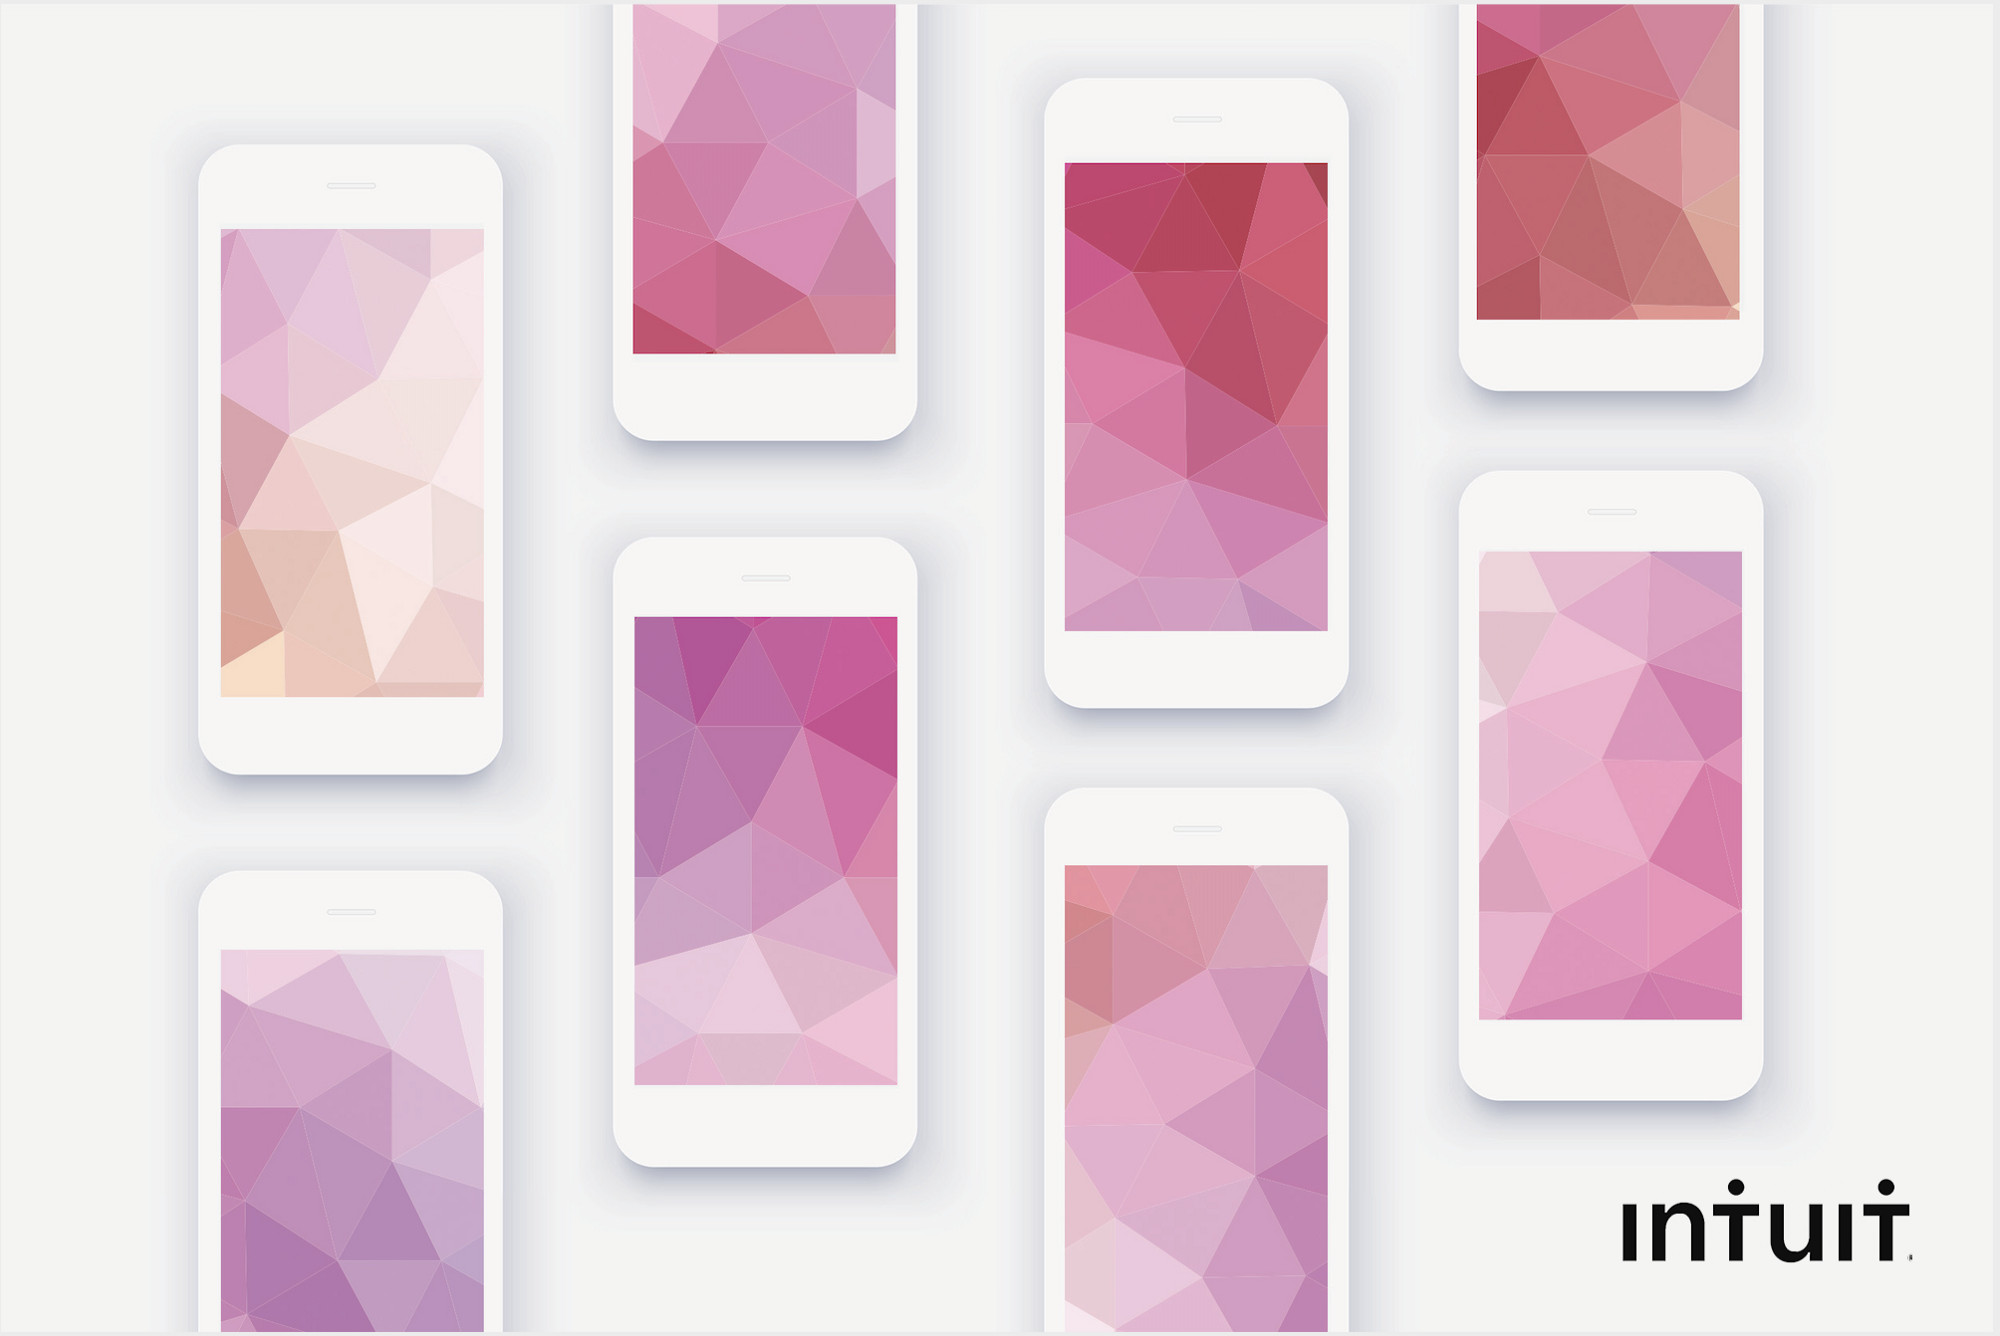 Abstract shapes extending across mobile screens like taxonomy